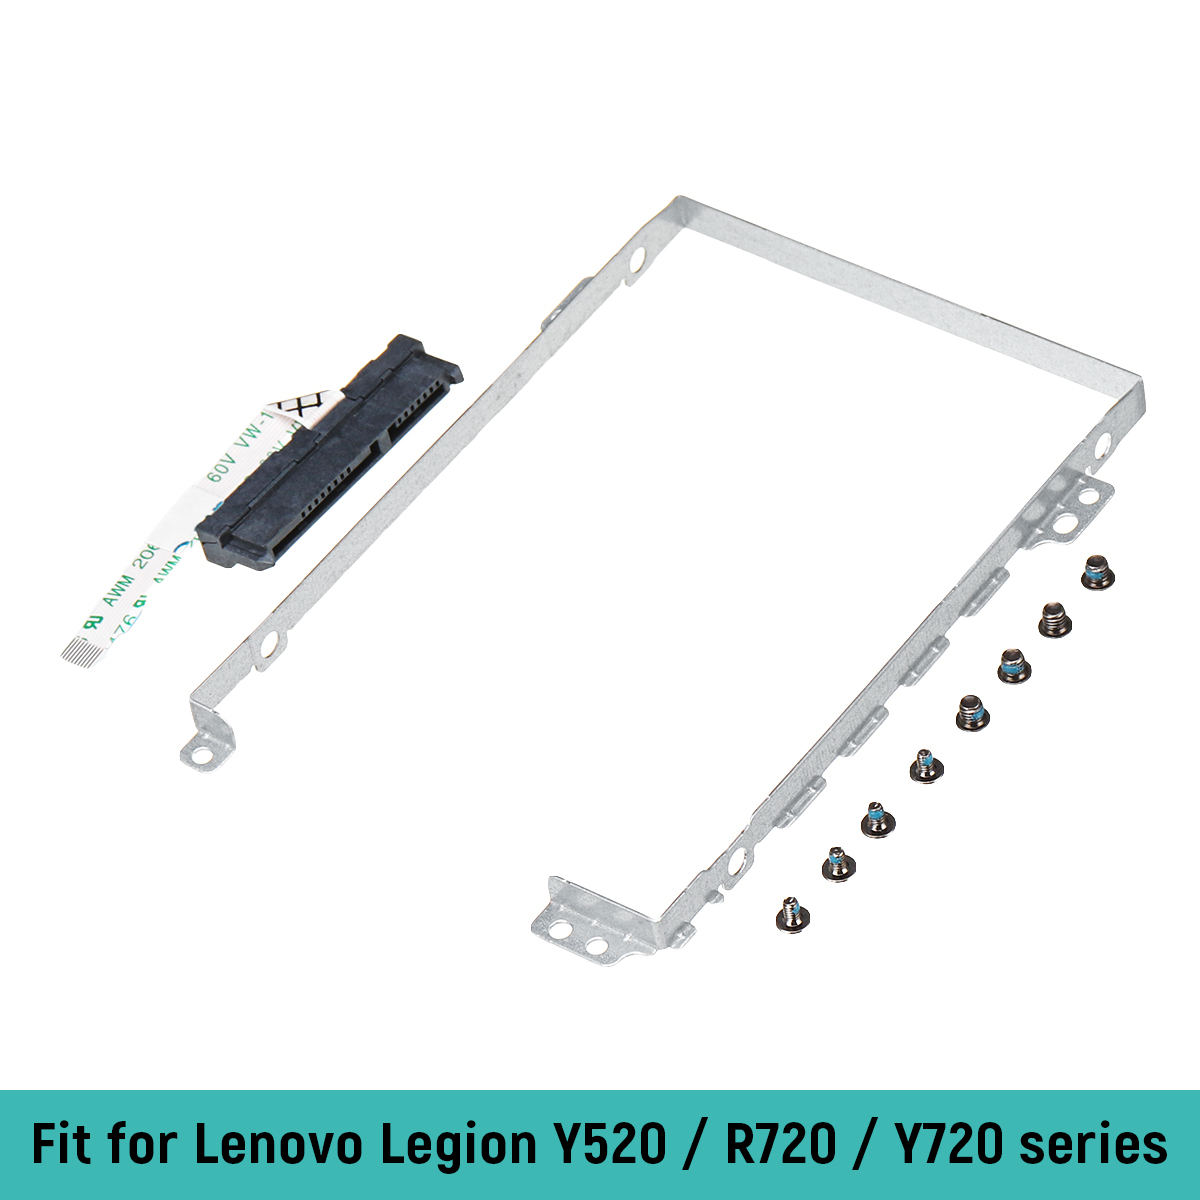 New HDD caddy For Lenovo Legion Y720 Y720-15IKB Hard Drive holder Bracket + Hard Drive HDD Connector Cable + screws new original sata hard drive connector w cable for lenovo yoga 2 13 fru 90205124 dc02001vk00